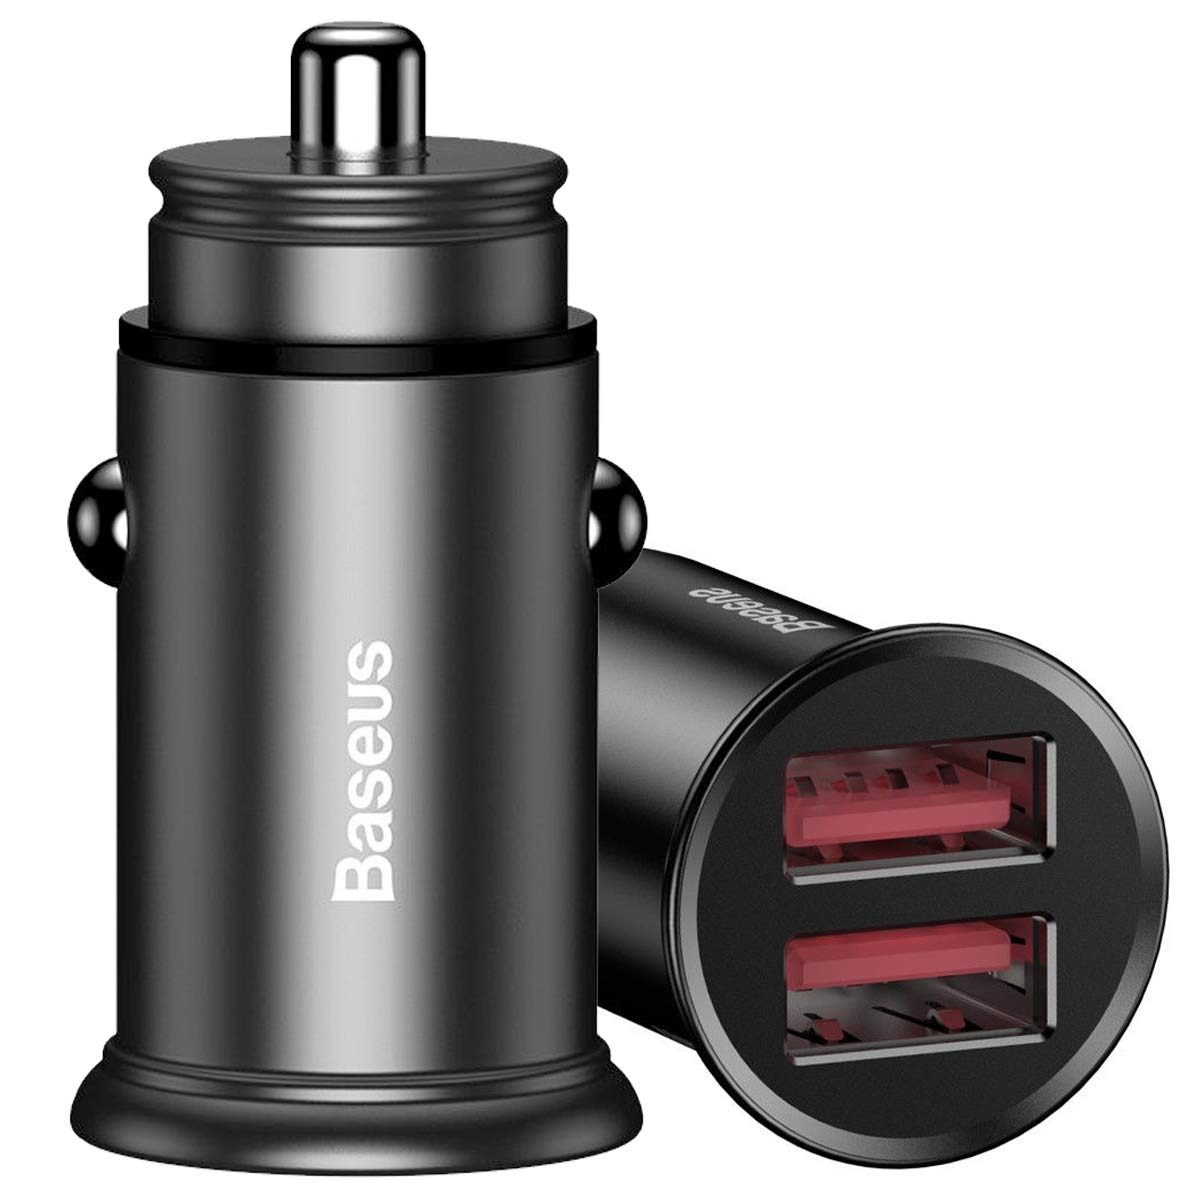 TJS Dual USB 3.0 Car Charger Aluminum Alloy 5V//5A 30W Quick Charger QC3.0 Compatible Apple iPhone Xs//XS Max//XR//X//8//8 Plus Samsung Galaxy Note 9//8 iPad Mini//Pro S9//S9+//S8//S8 Plus and More Black